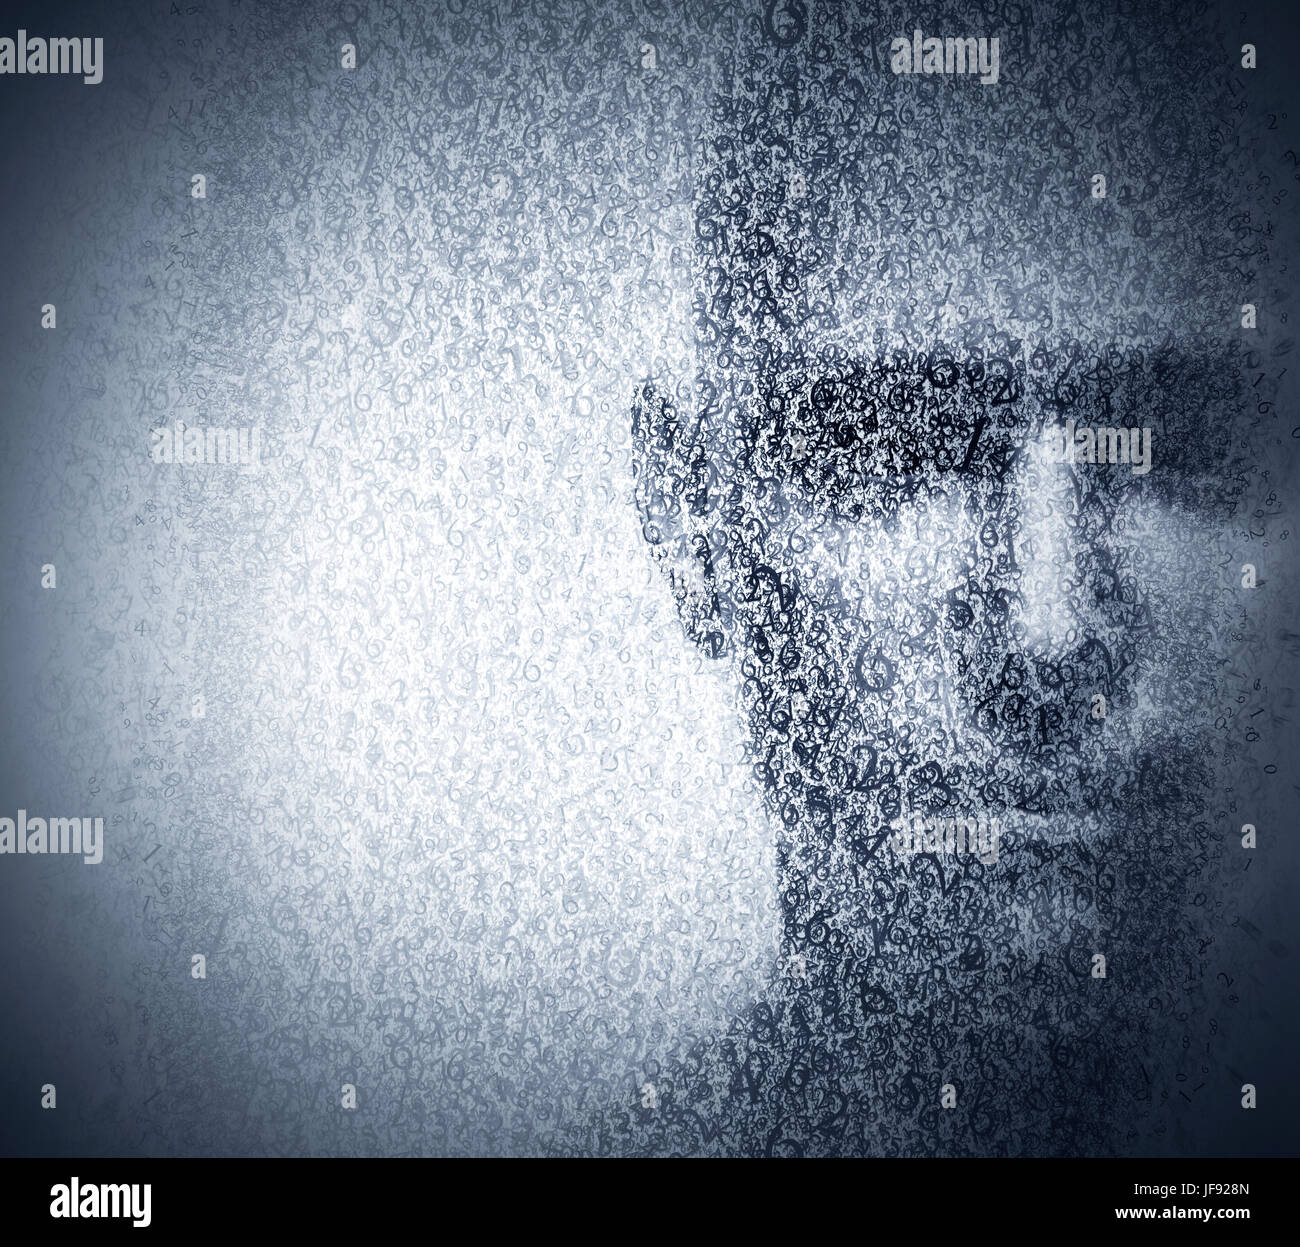 Man face blended with binary code digits. Concept of hacker, coding, programming, data protection etc. Stock Photo